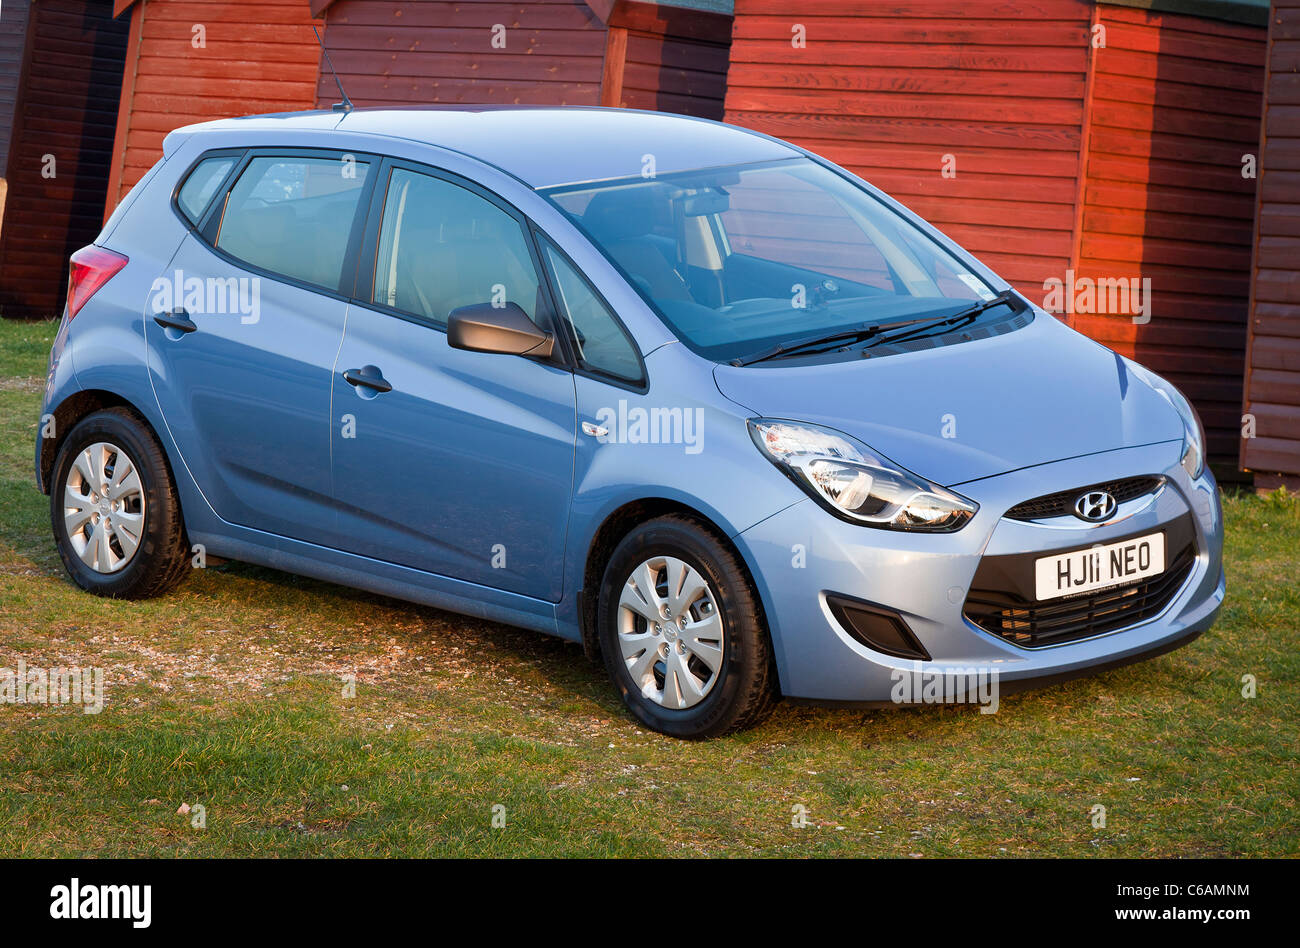 Hyundai iX20 11 reg blue hatchback estate compact MPV carbeach huts Intelligent Stop and Go ISG technology reduce - Stock Image